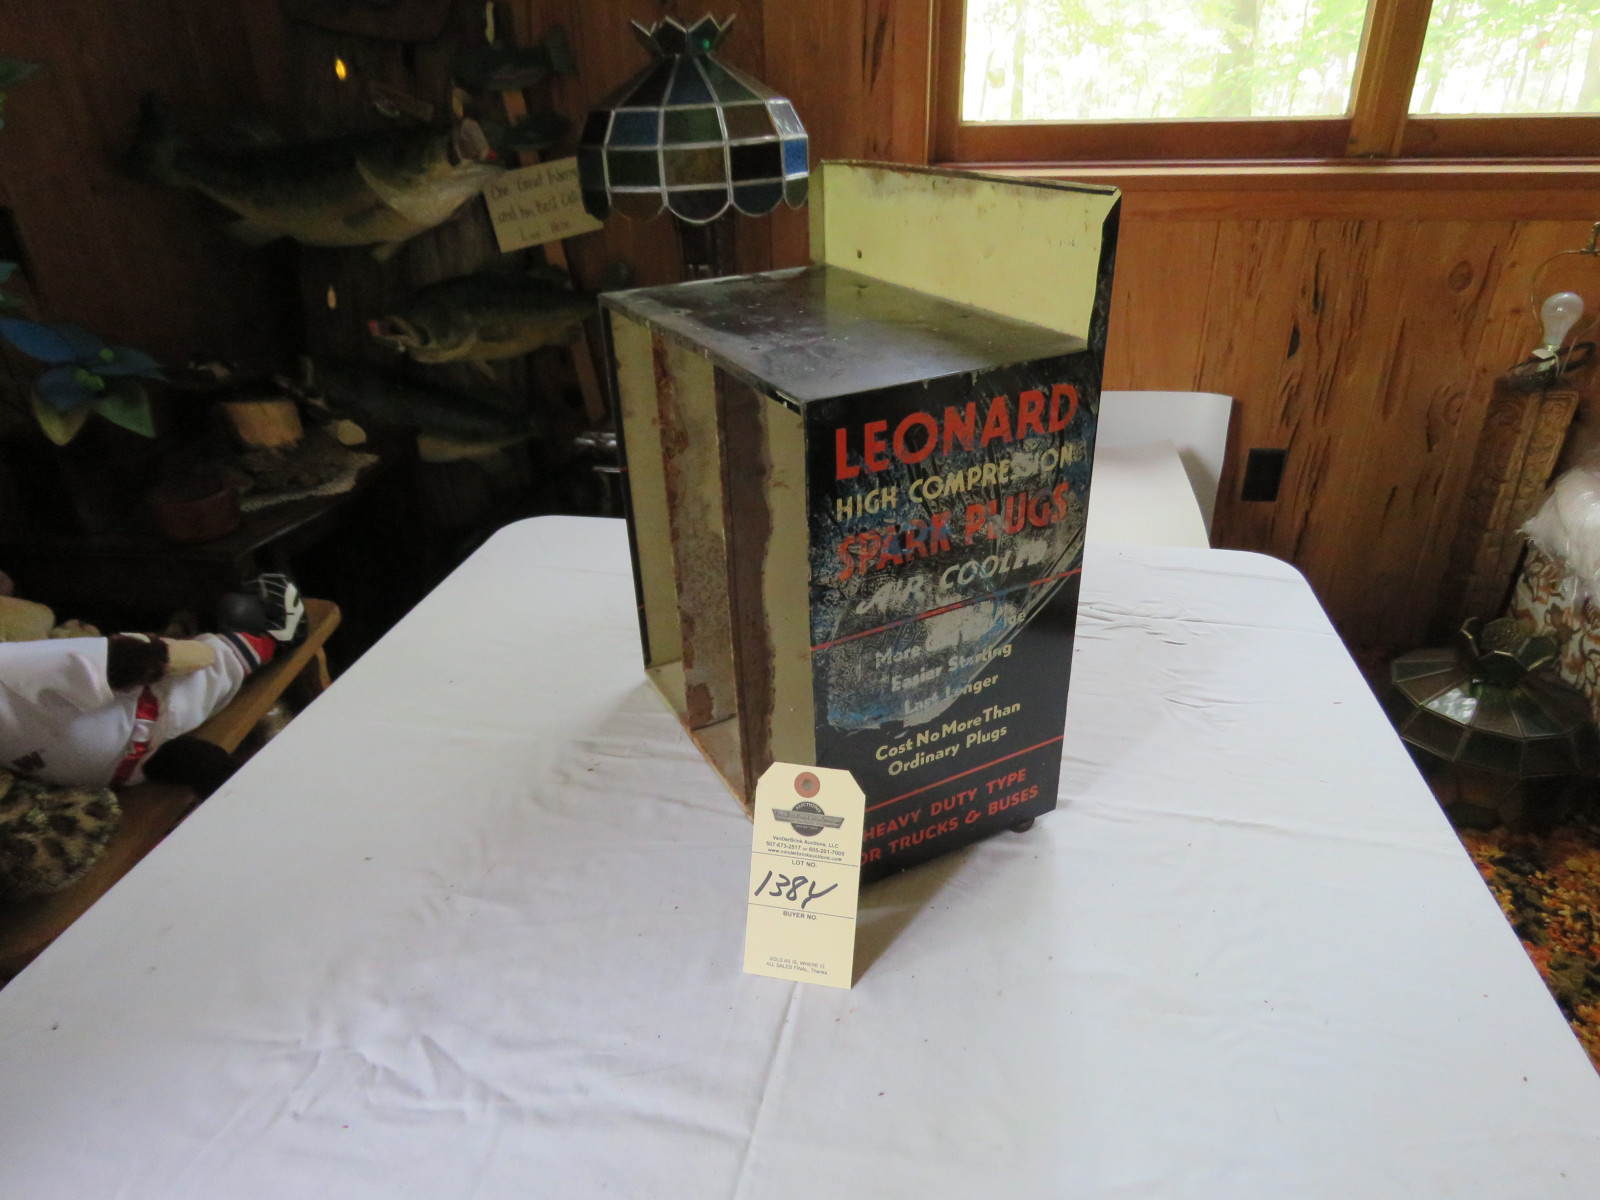 Vintage Leonard Air Cooled Spark Plug Display and Metal Case - Image 2